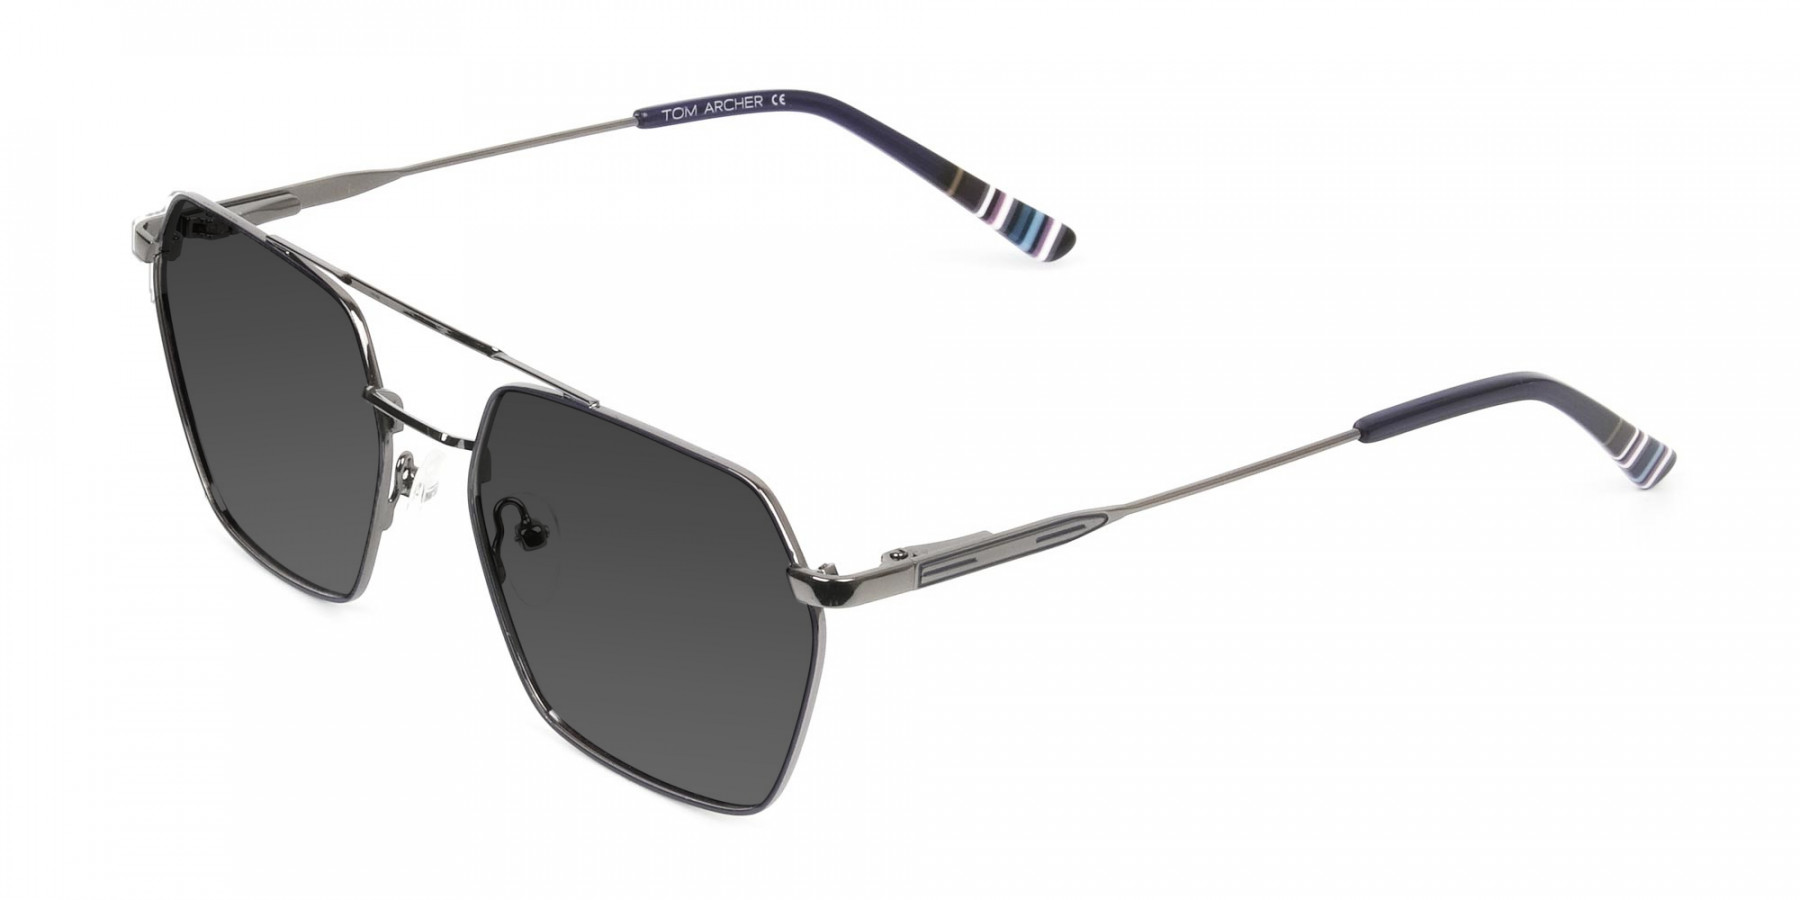 dark-navy-gunmetal-grey tinted-thin-frame-sunglasses-3